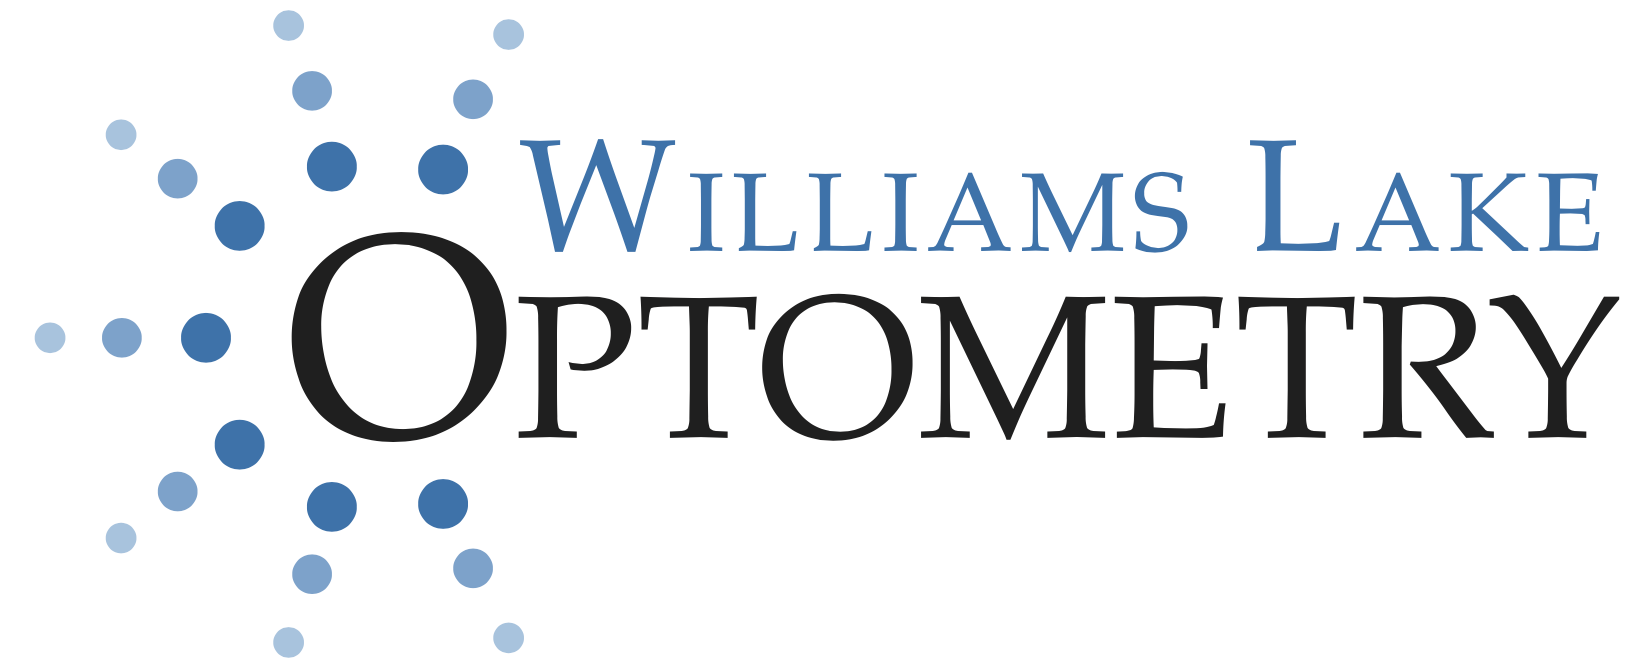 Williams Lake Optometry